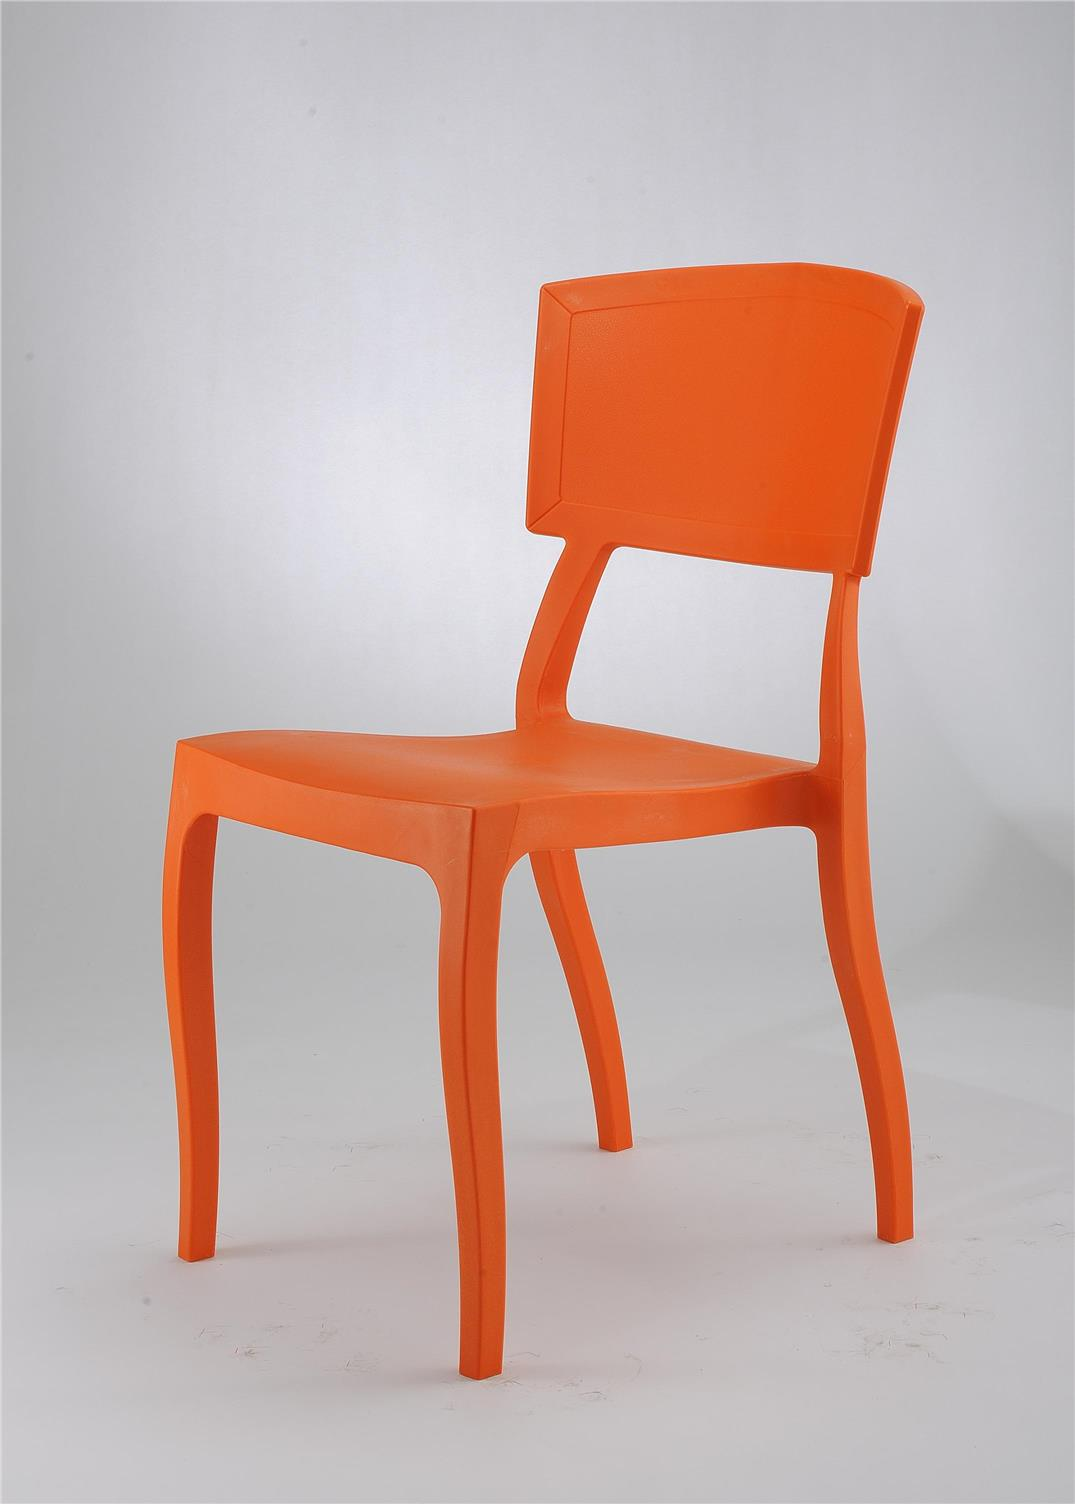 Decoration Chair | Modern Artistic designer chair Malaysia model: 1006